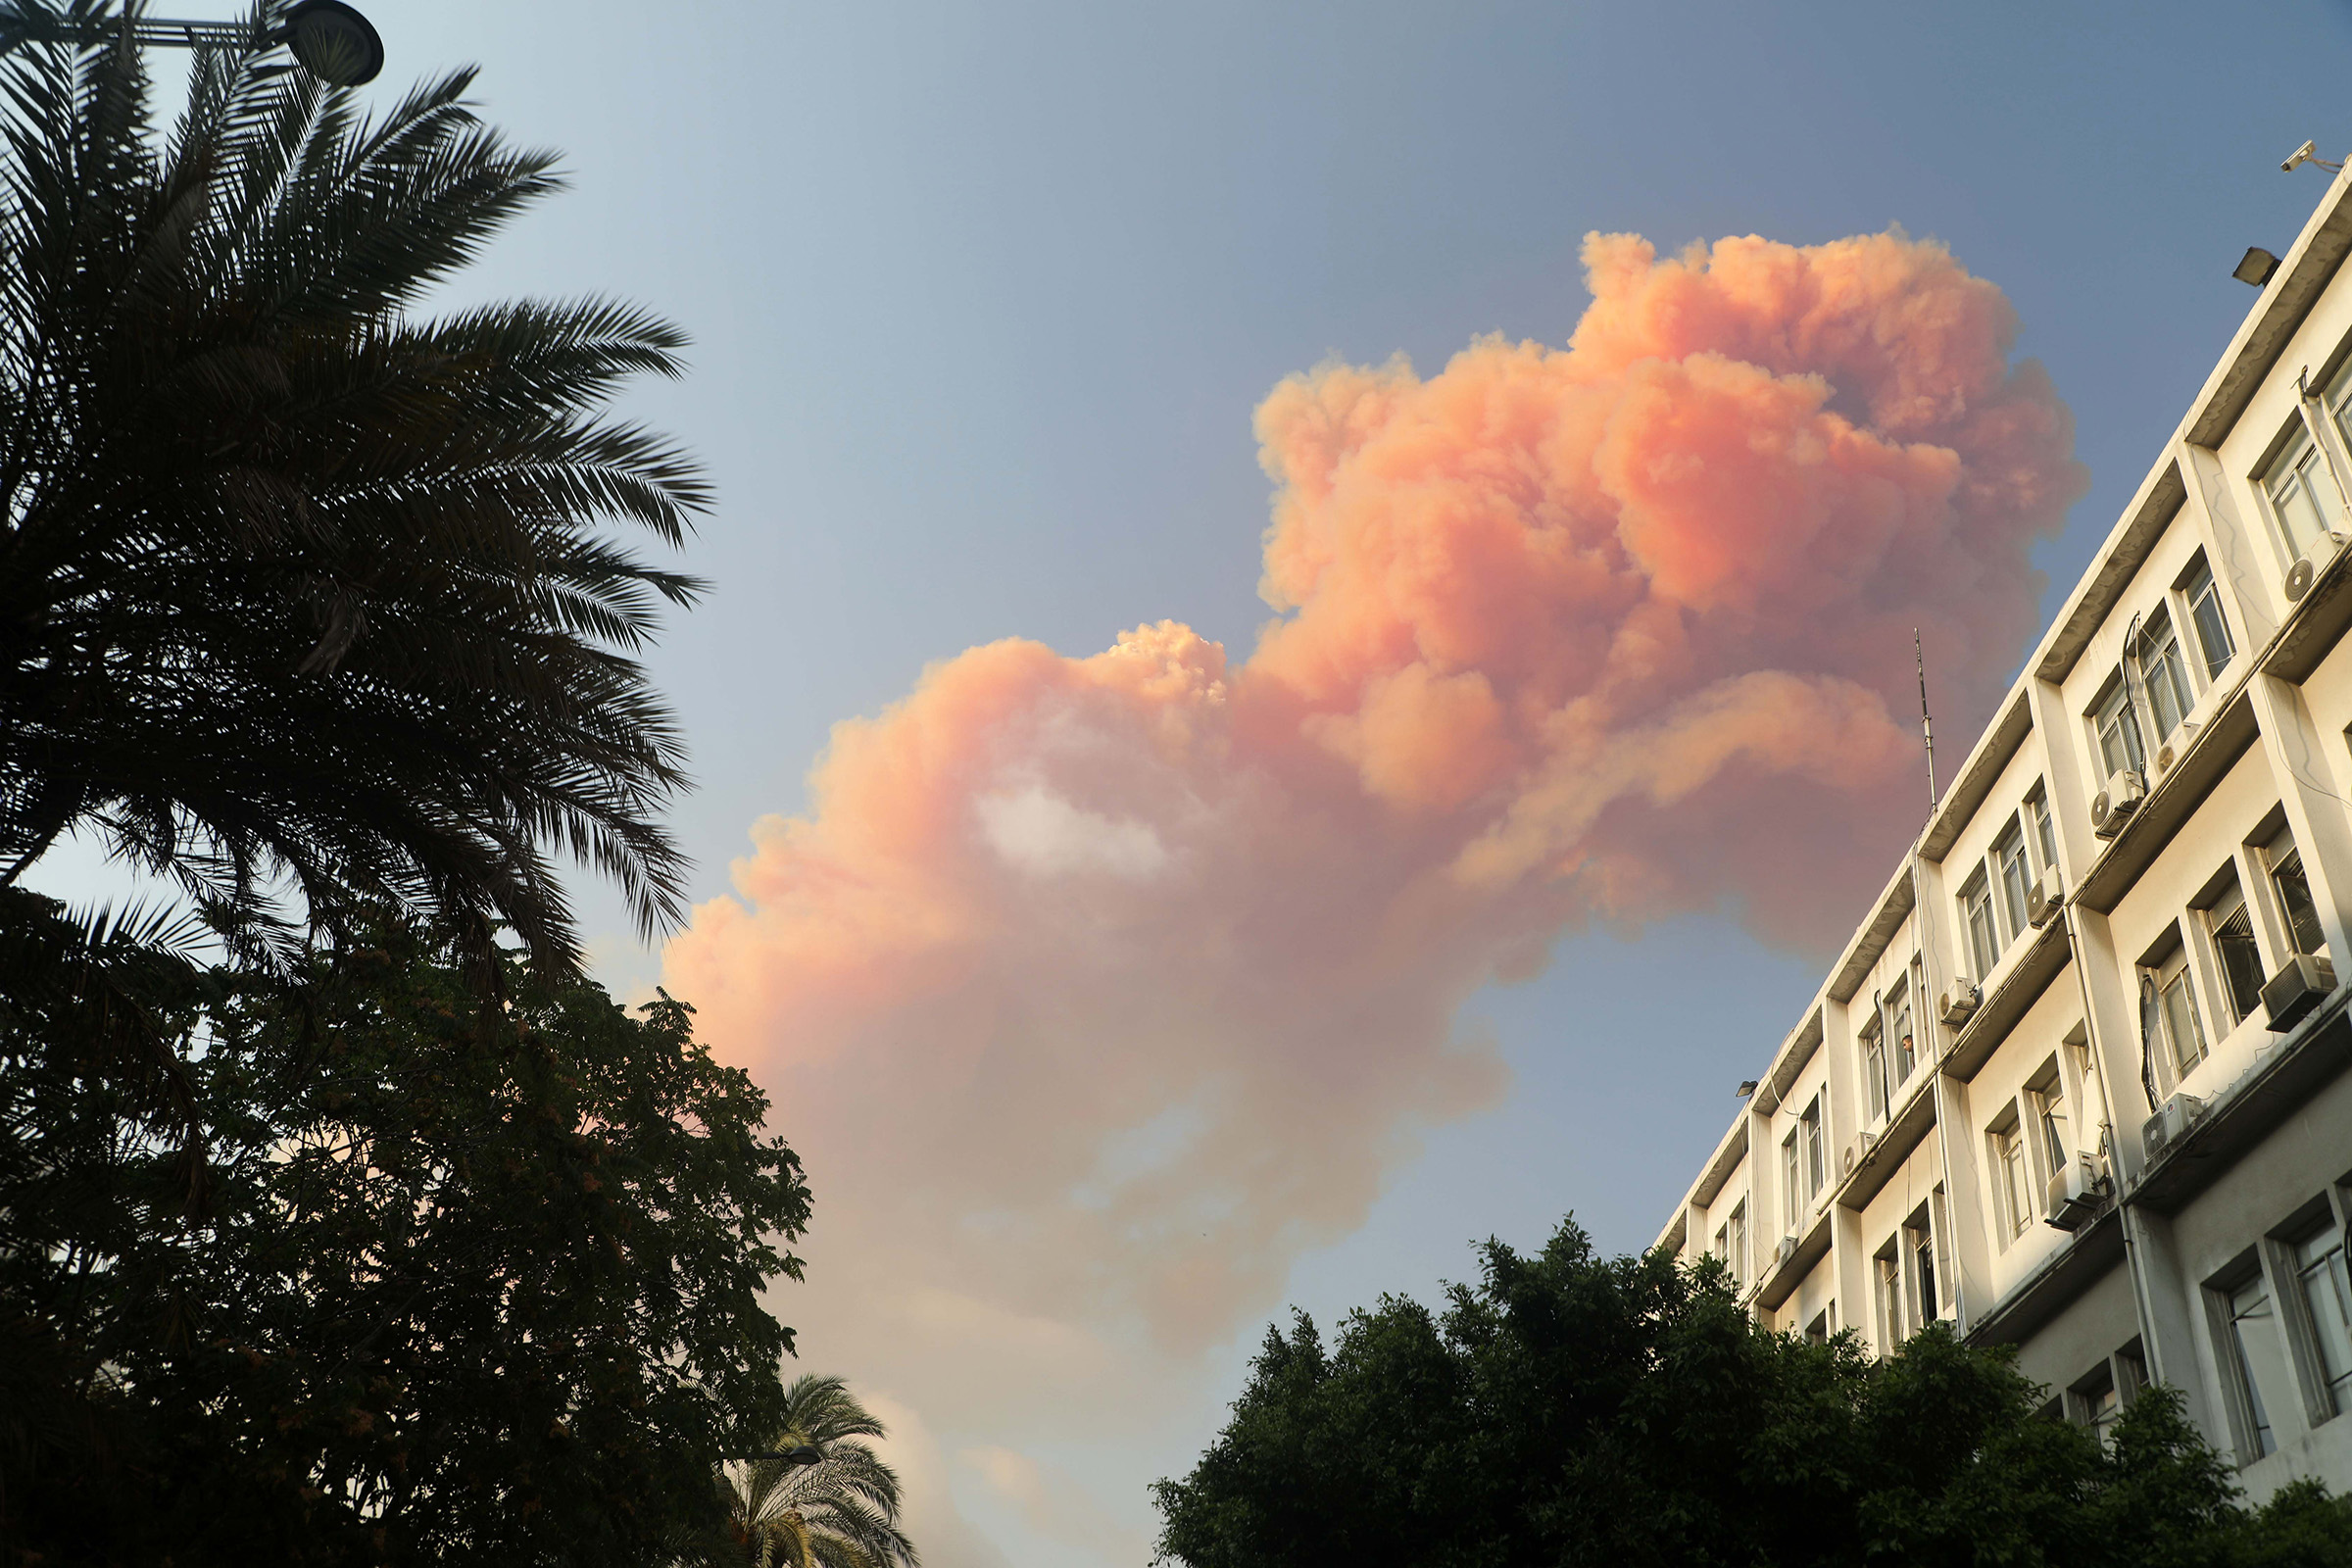 Pink smoke rises following the explosion.